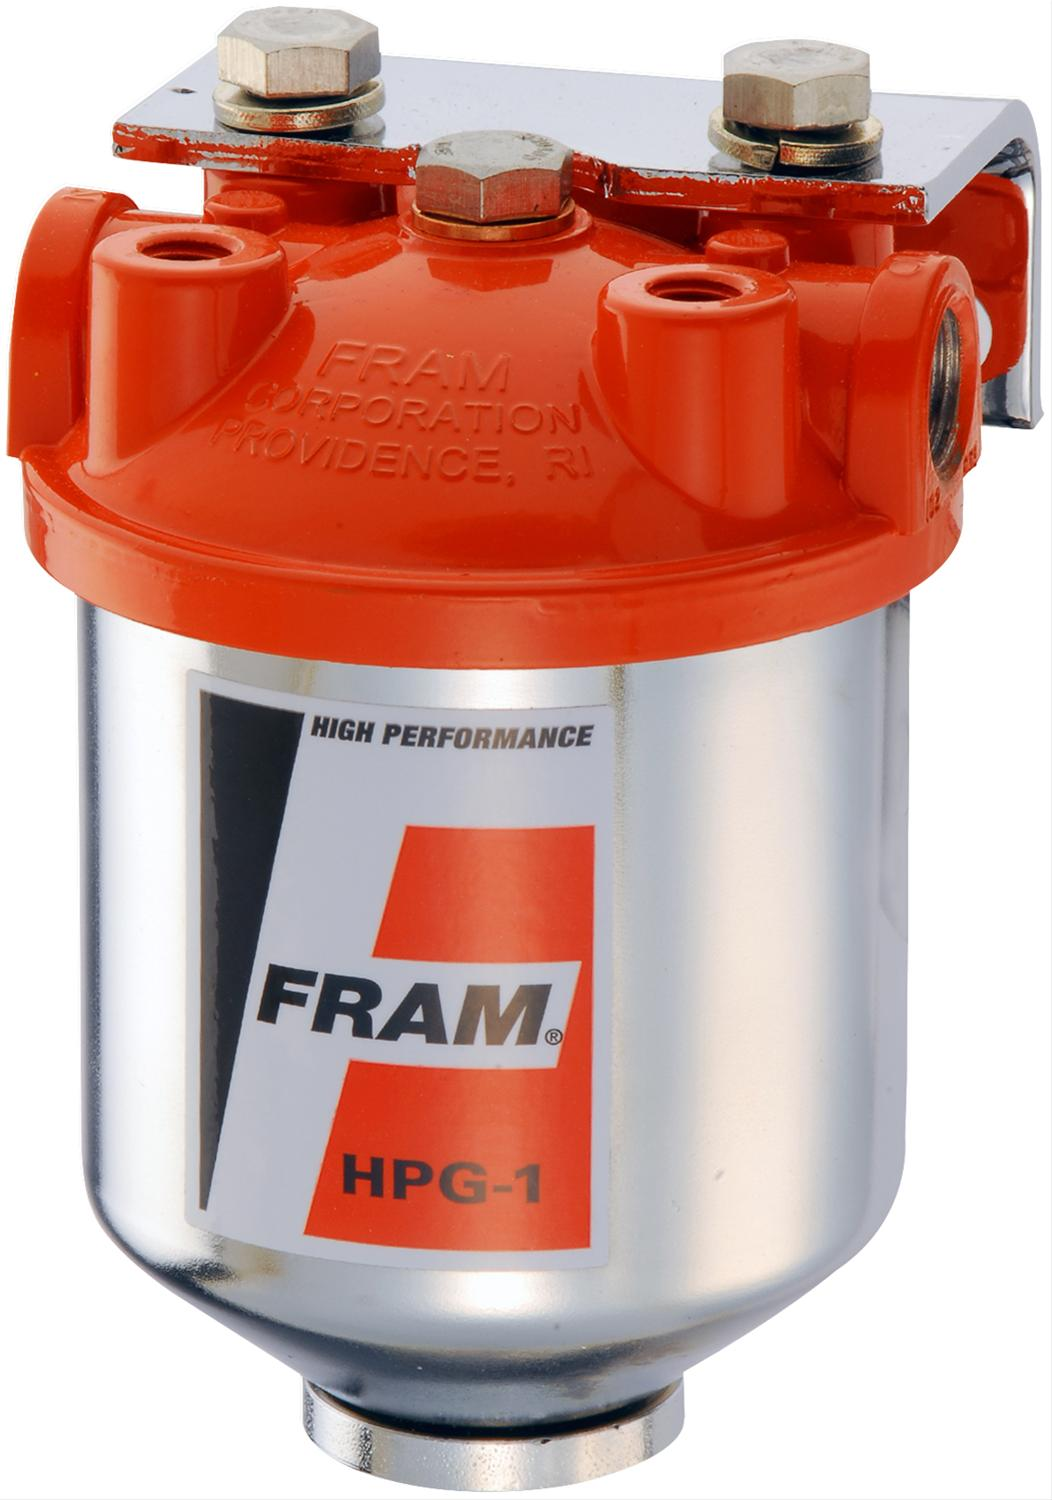 Enjoyable Fram Fuel Filters Hpg1 Free Shipping On Orders Over 99 At Summit Wiring Cloud Ymoonsalvmohammedshrineorg